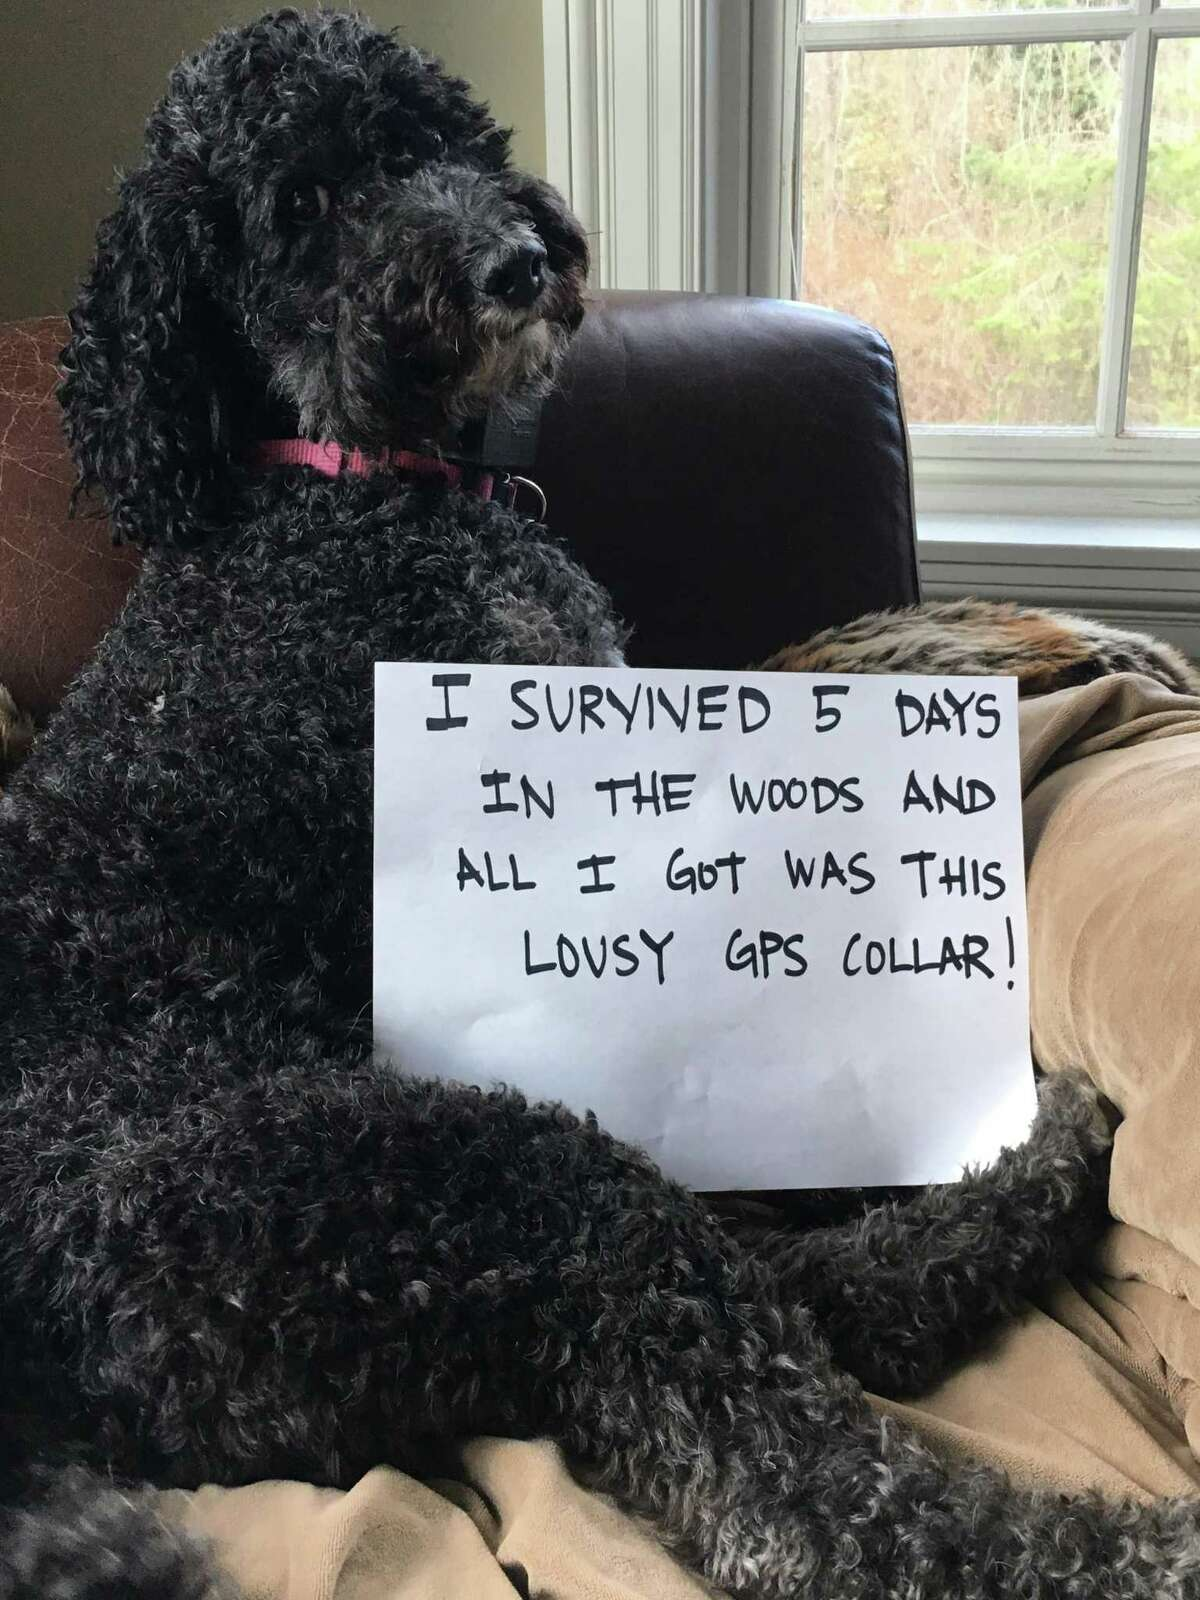 Zoe the goldendoodle was lost for five days while her family was away for Thanksgiving. With the help of friends and neighbors, she was reunited with her family.